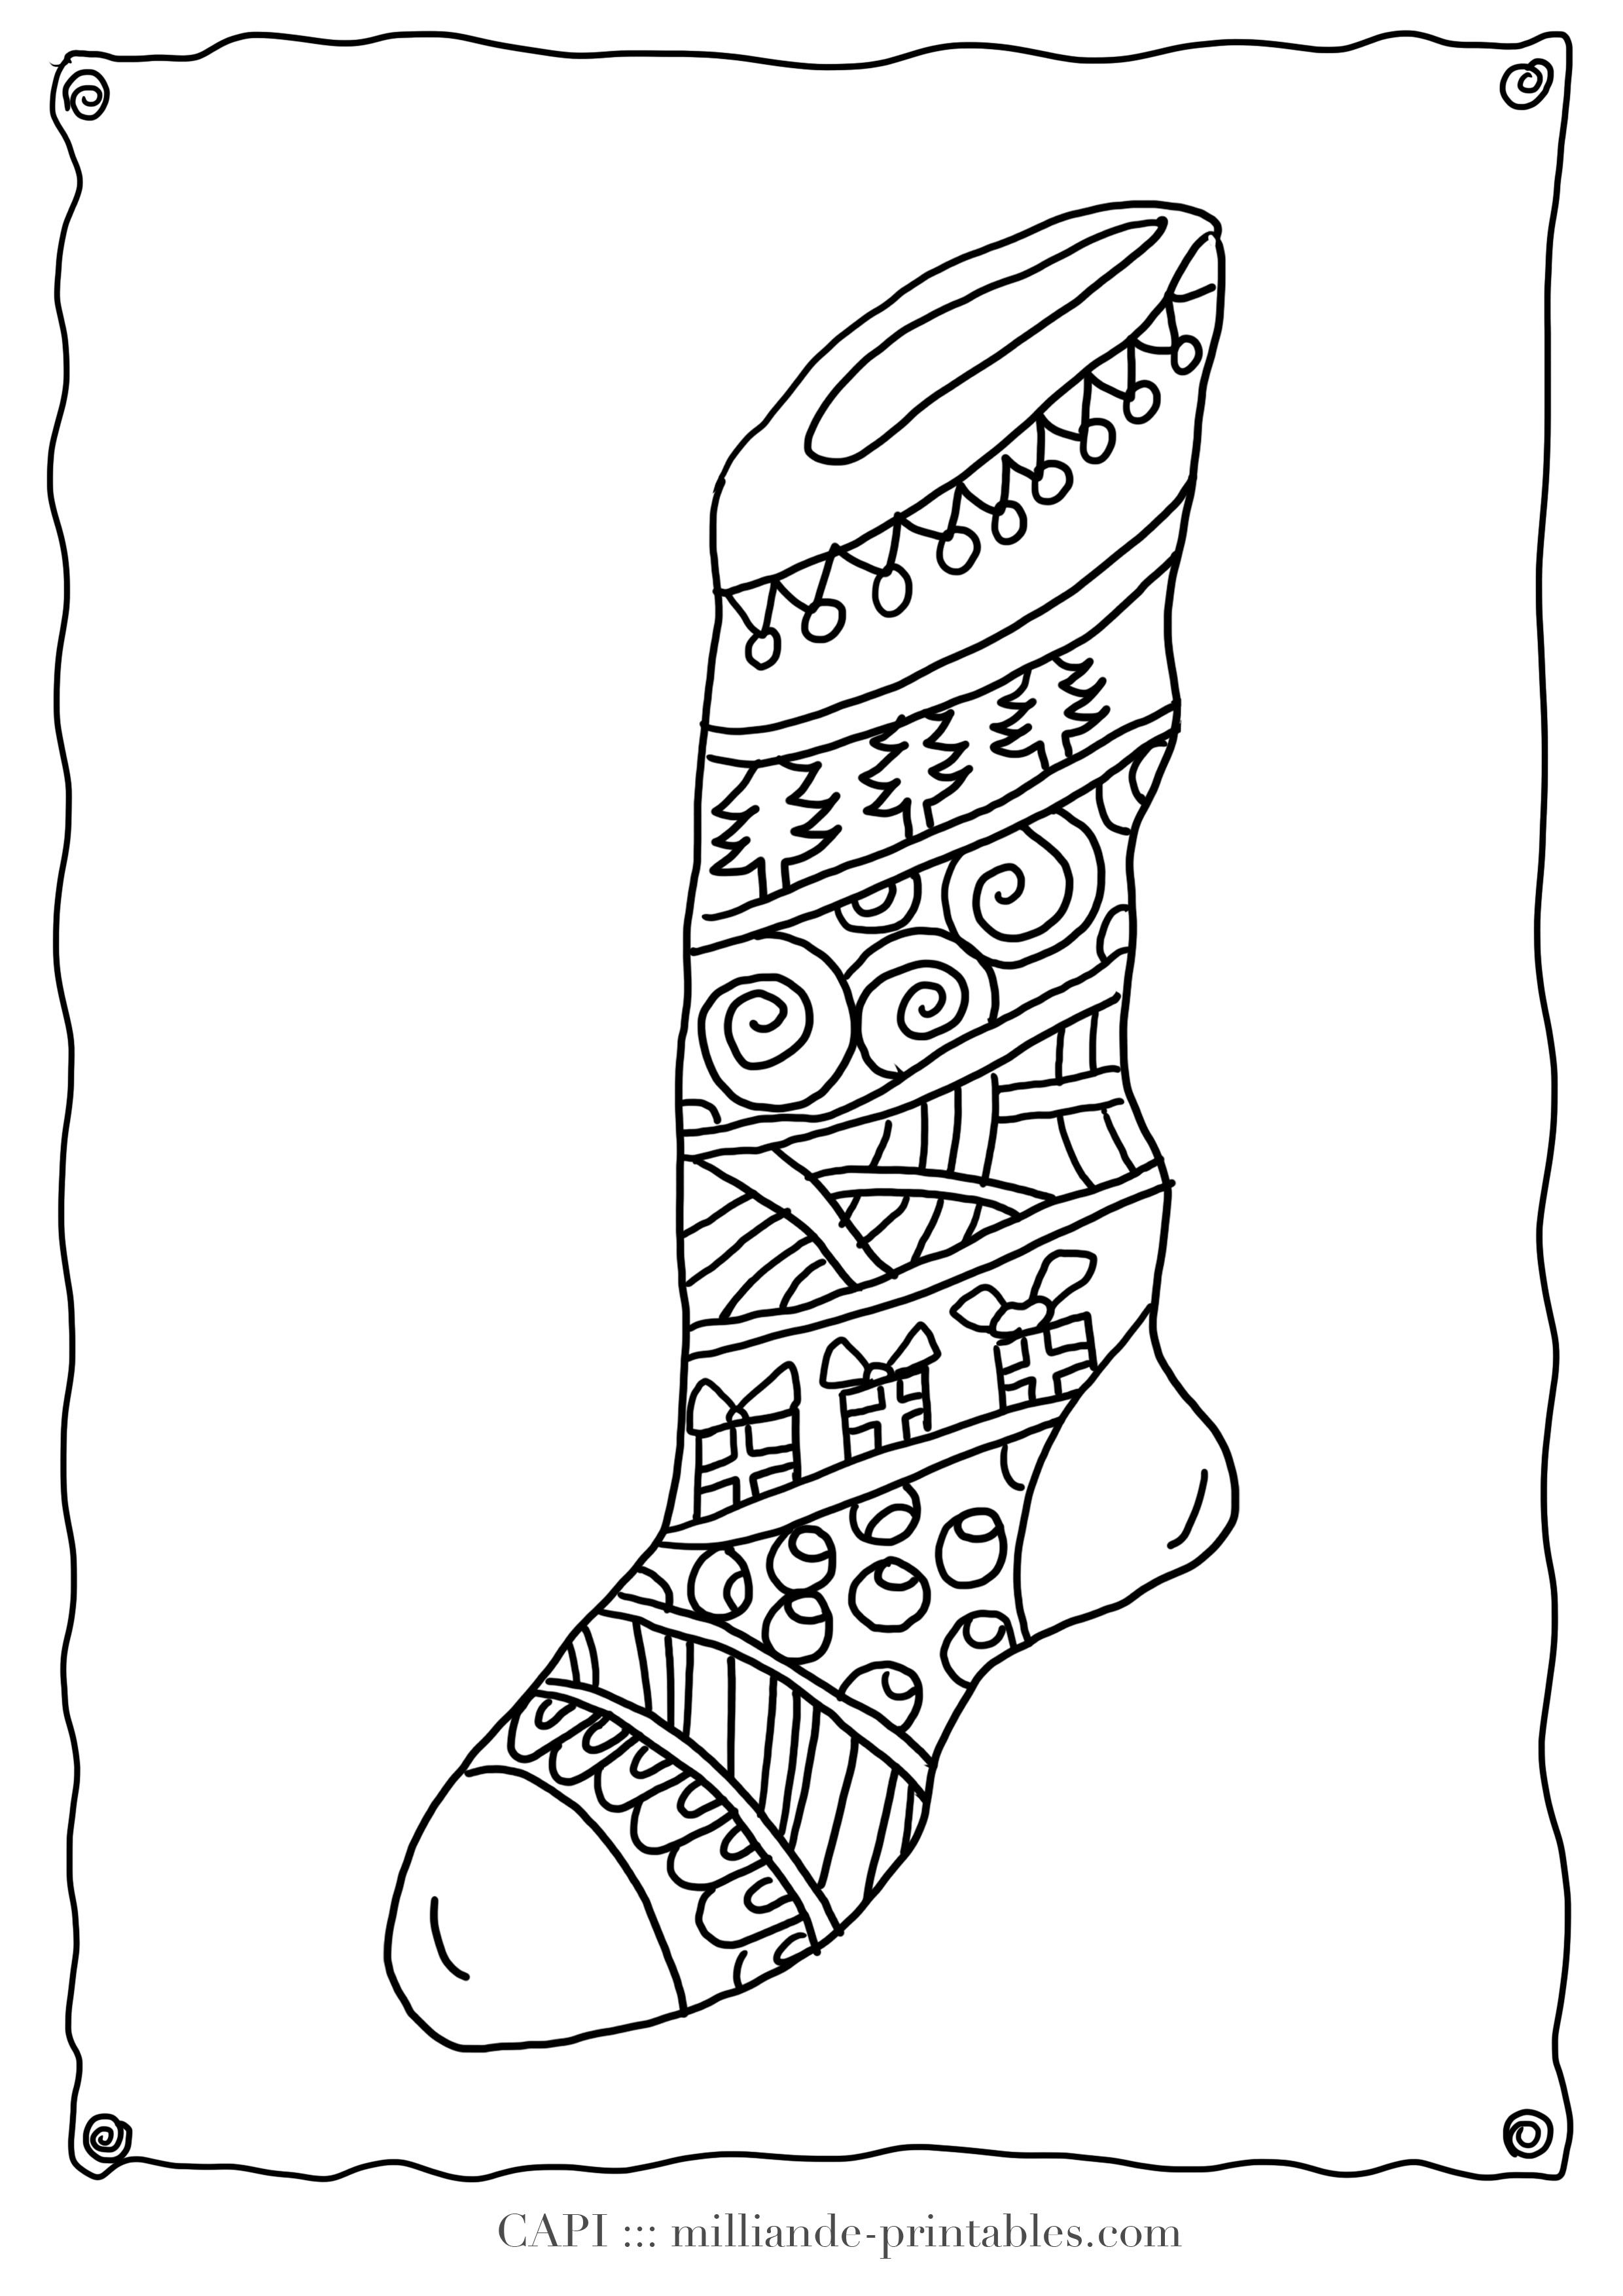 Christmas Coloring Page Stocking Milliande S Original